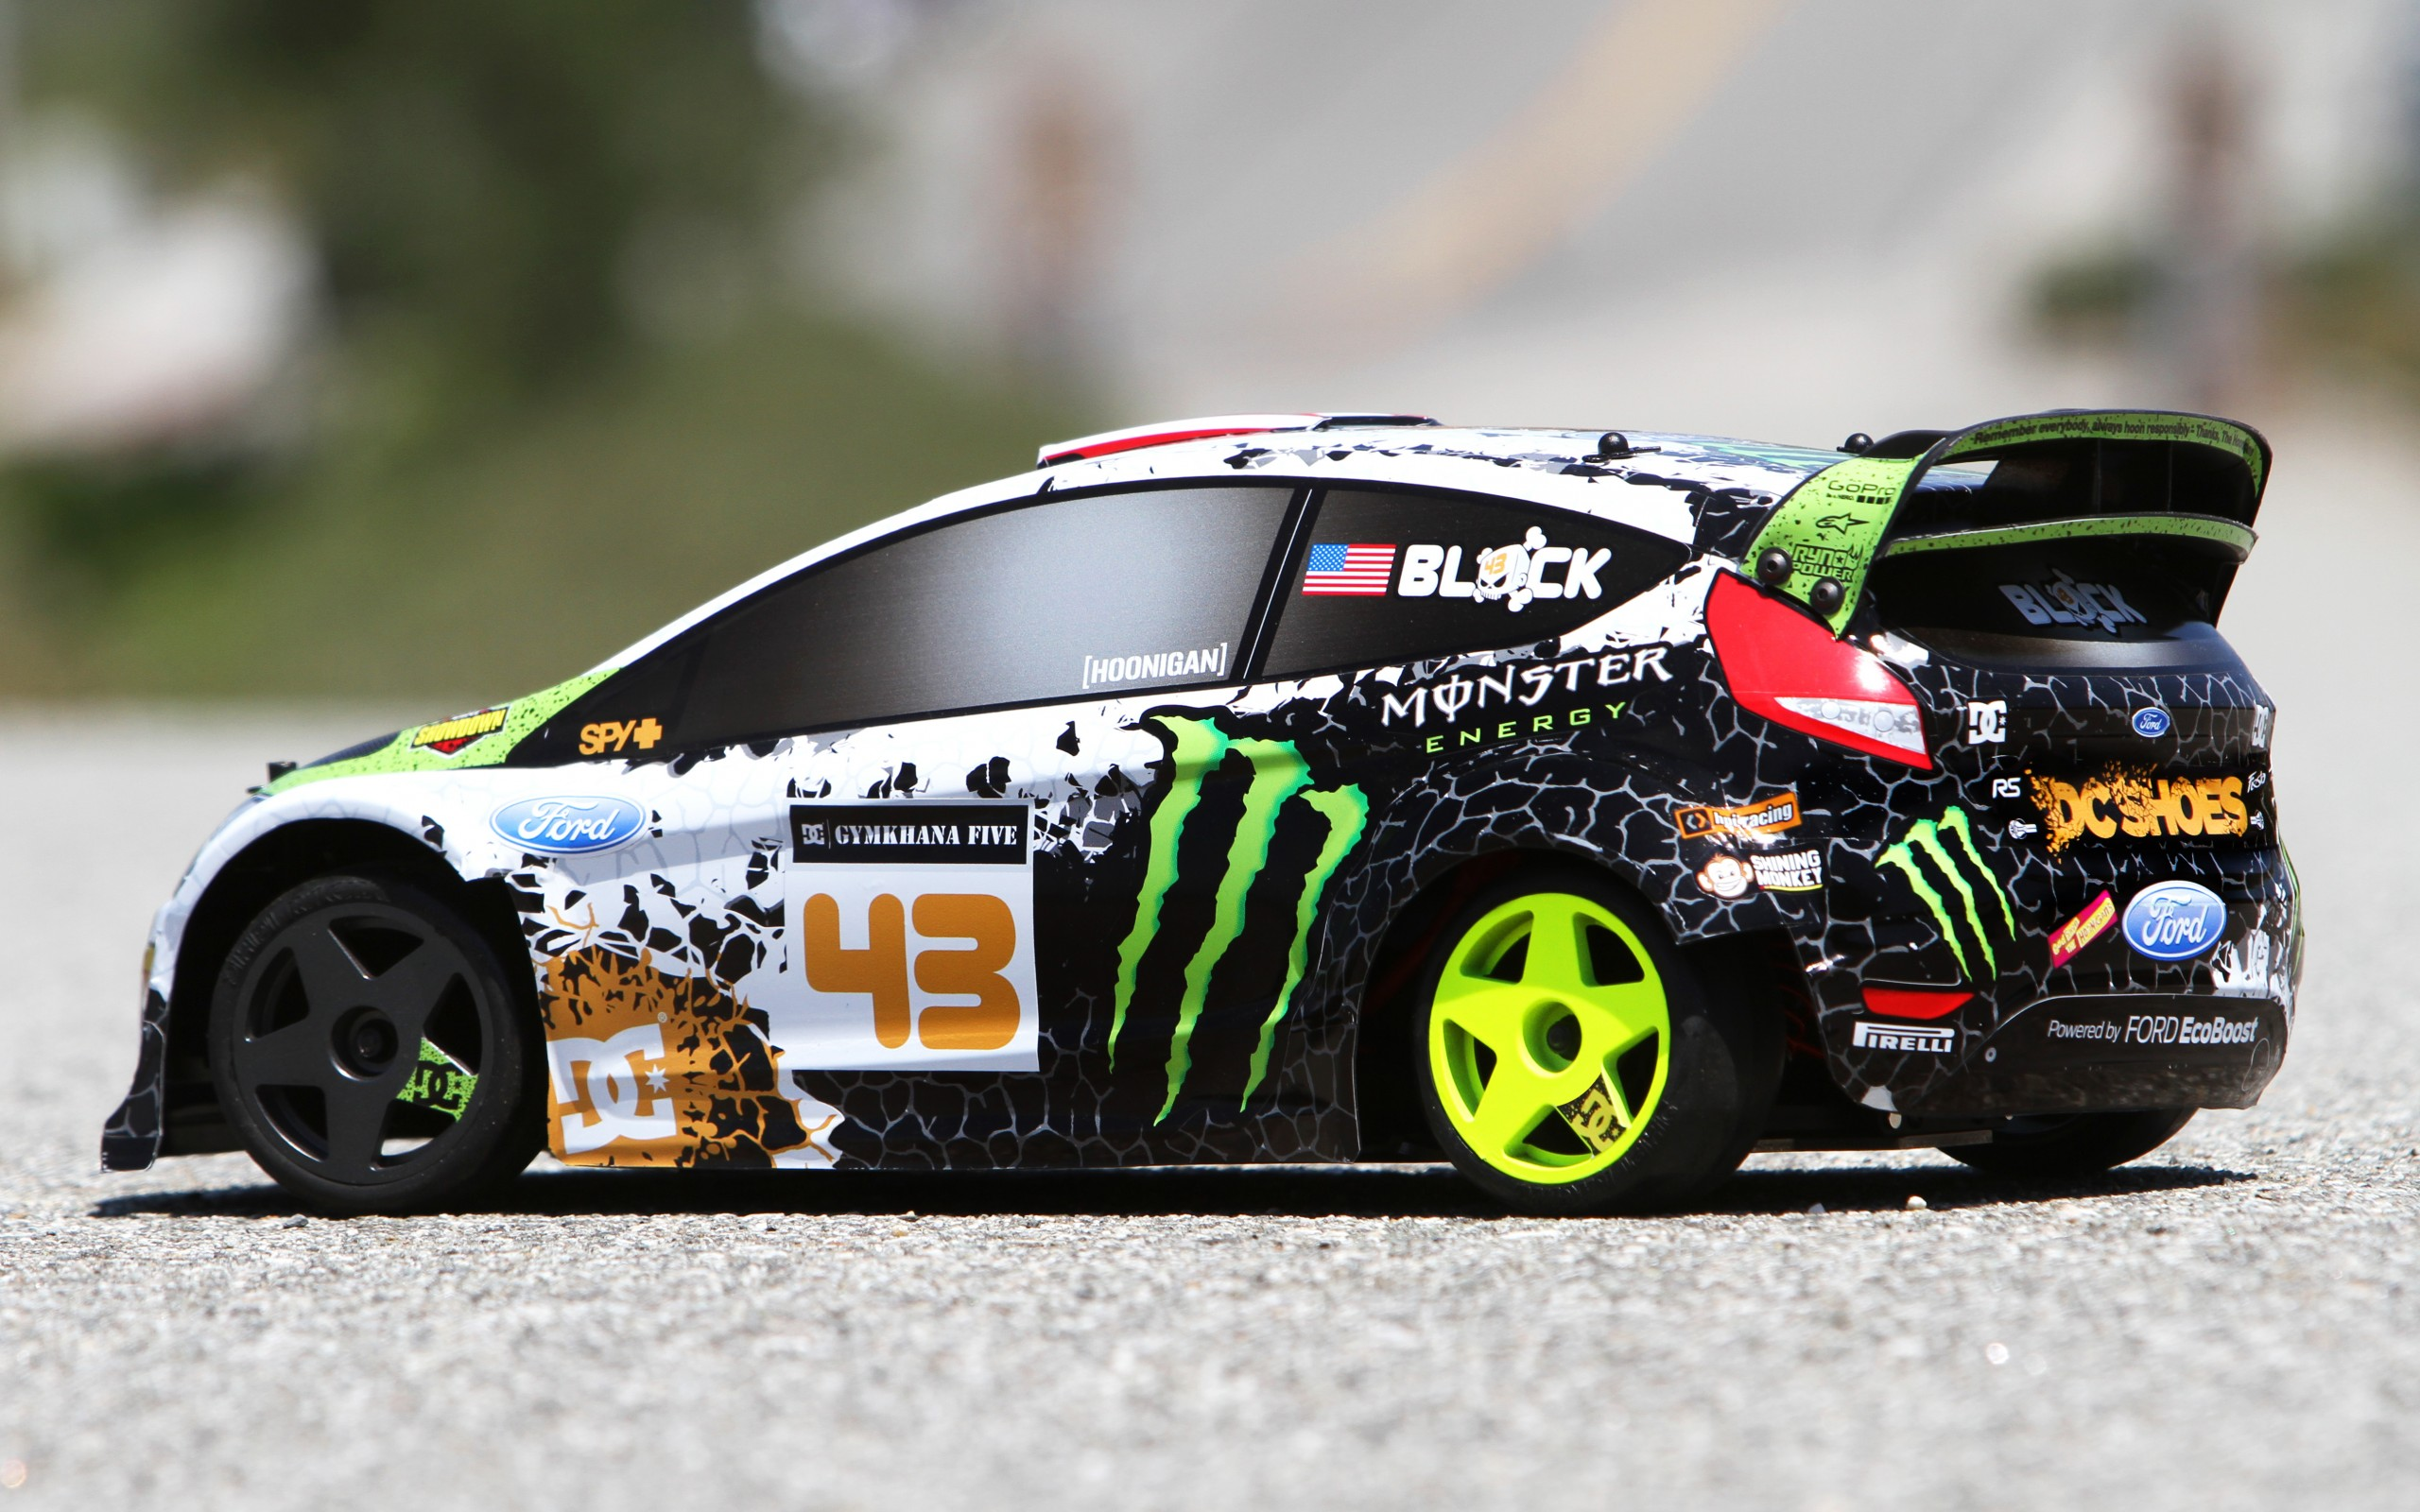 Ford Fiesta Car Ken Block Drift Race Racing Toy Toys Wallpaper